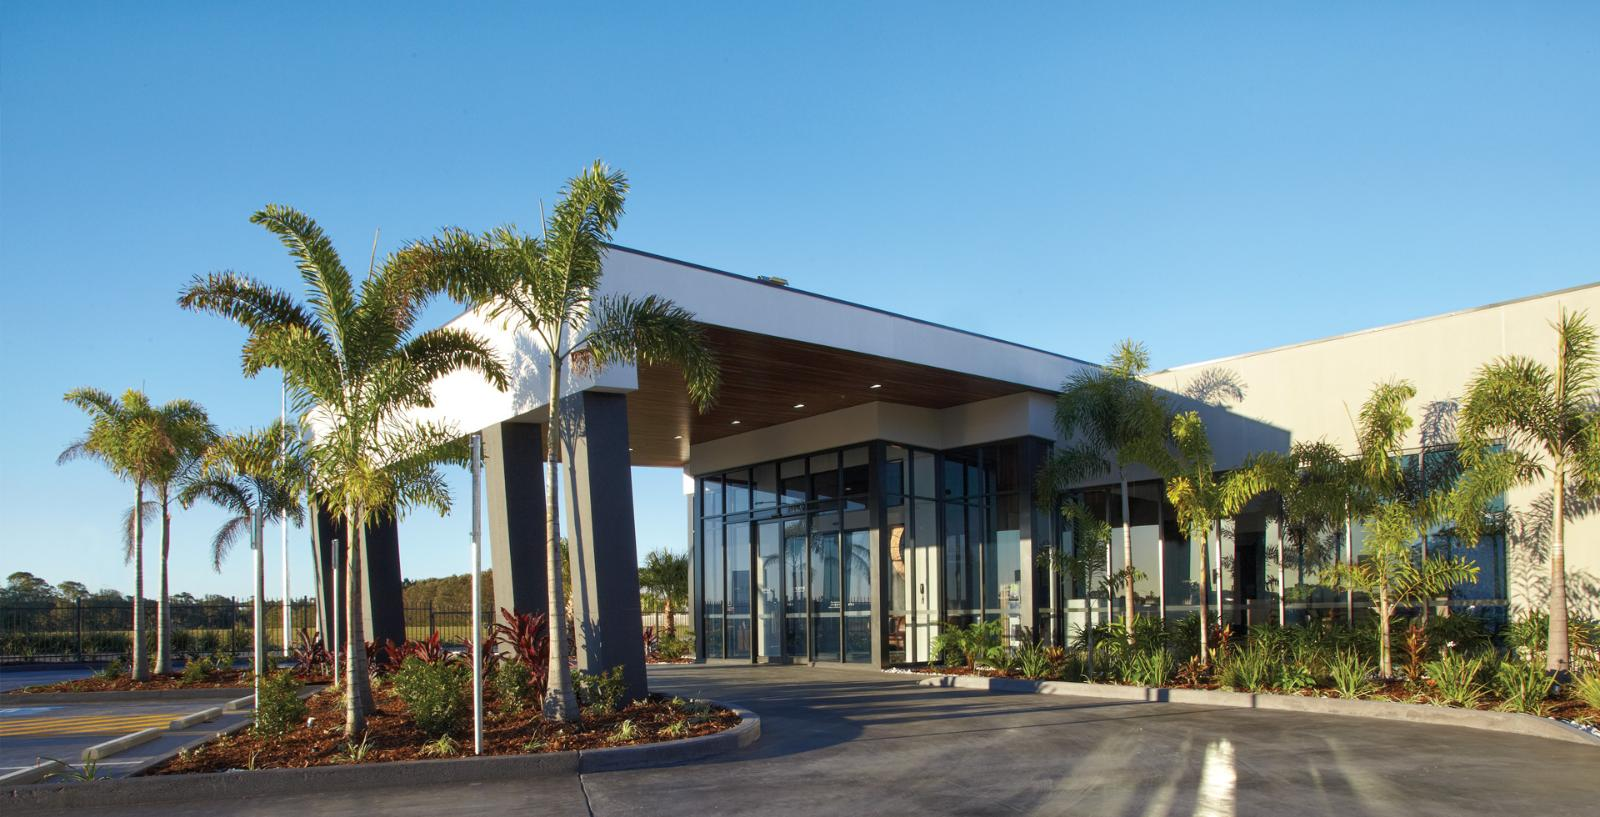 Arcare aged care maroochydore exterior 02